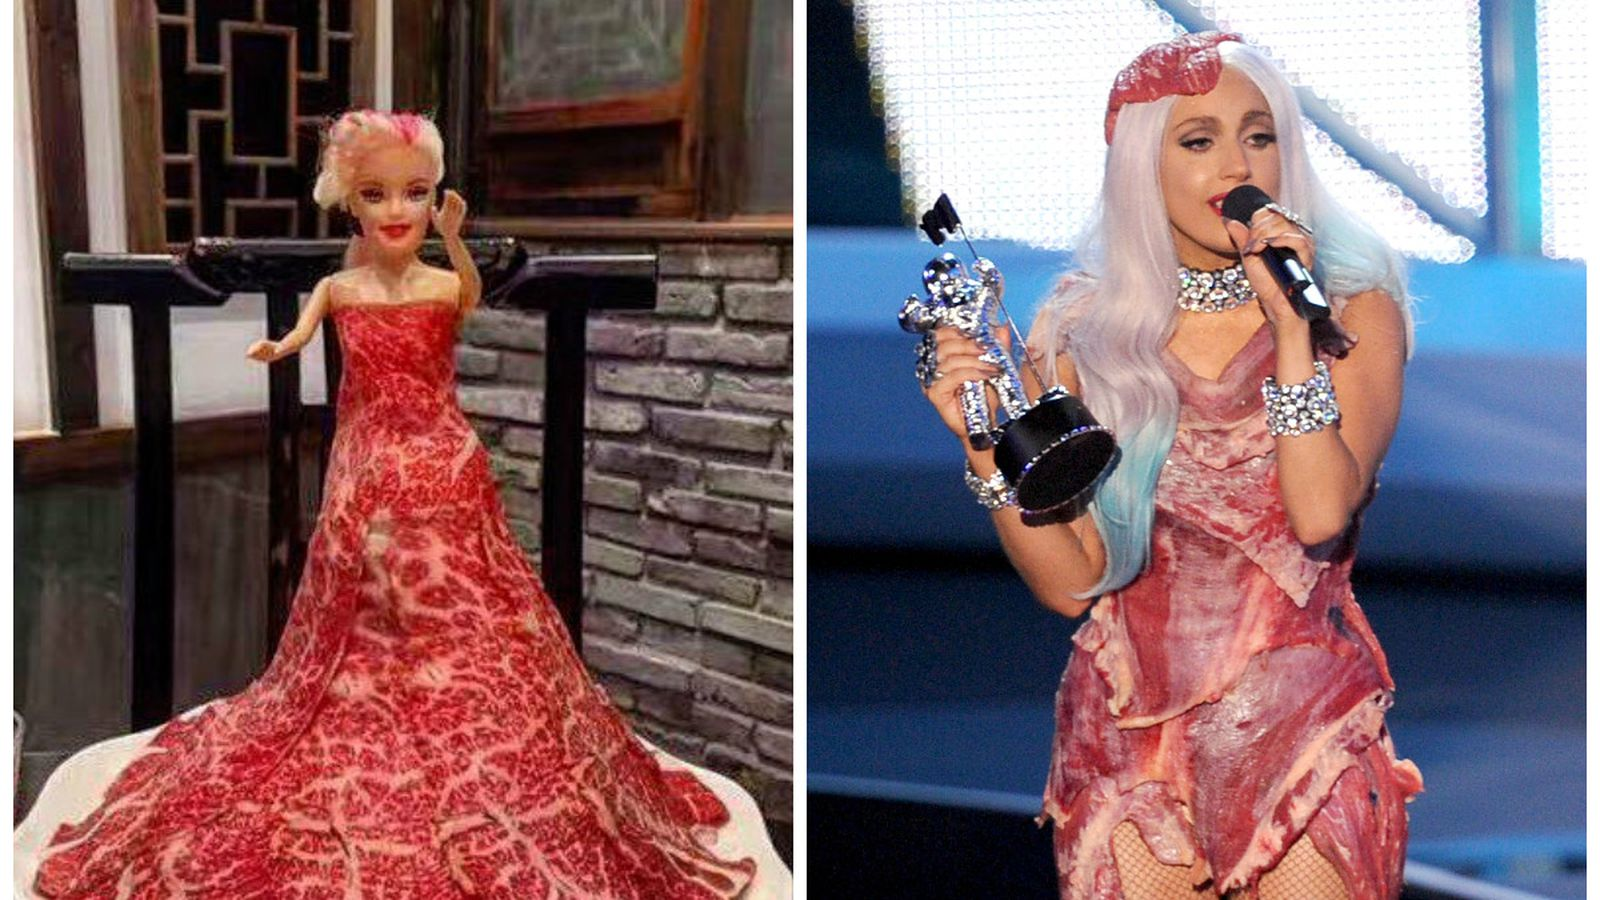 Now You Can Have Lady Gaga's Meat Dress and Eat It Too - Eater